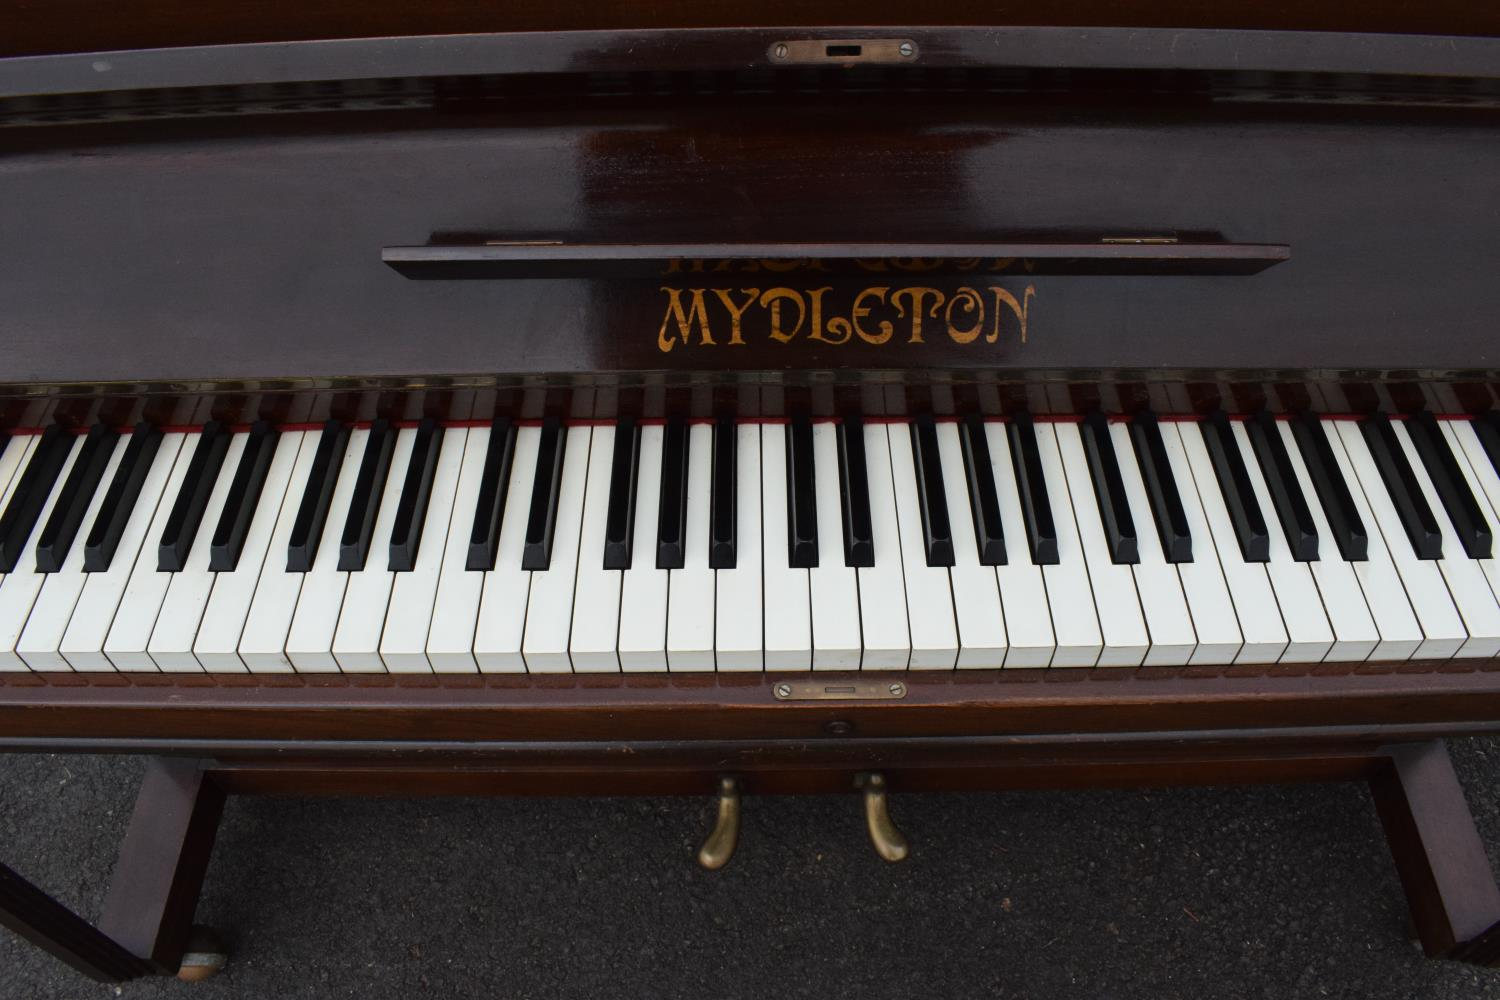 A Breedon and Middleton 'Mydleton' of 42 High Street Crewe upright wooden piano with 85 keys - Image 5 of 11